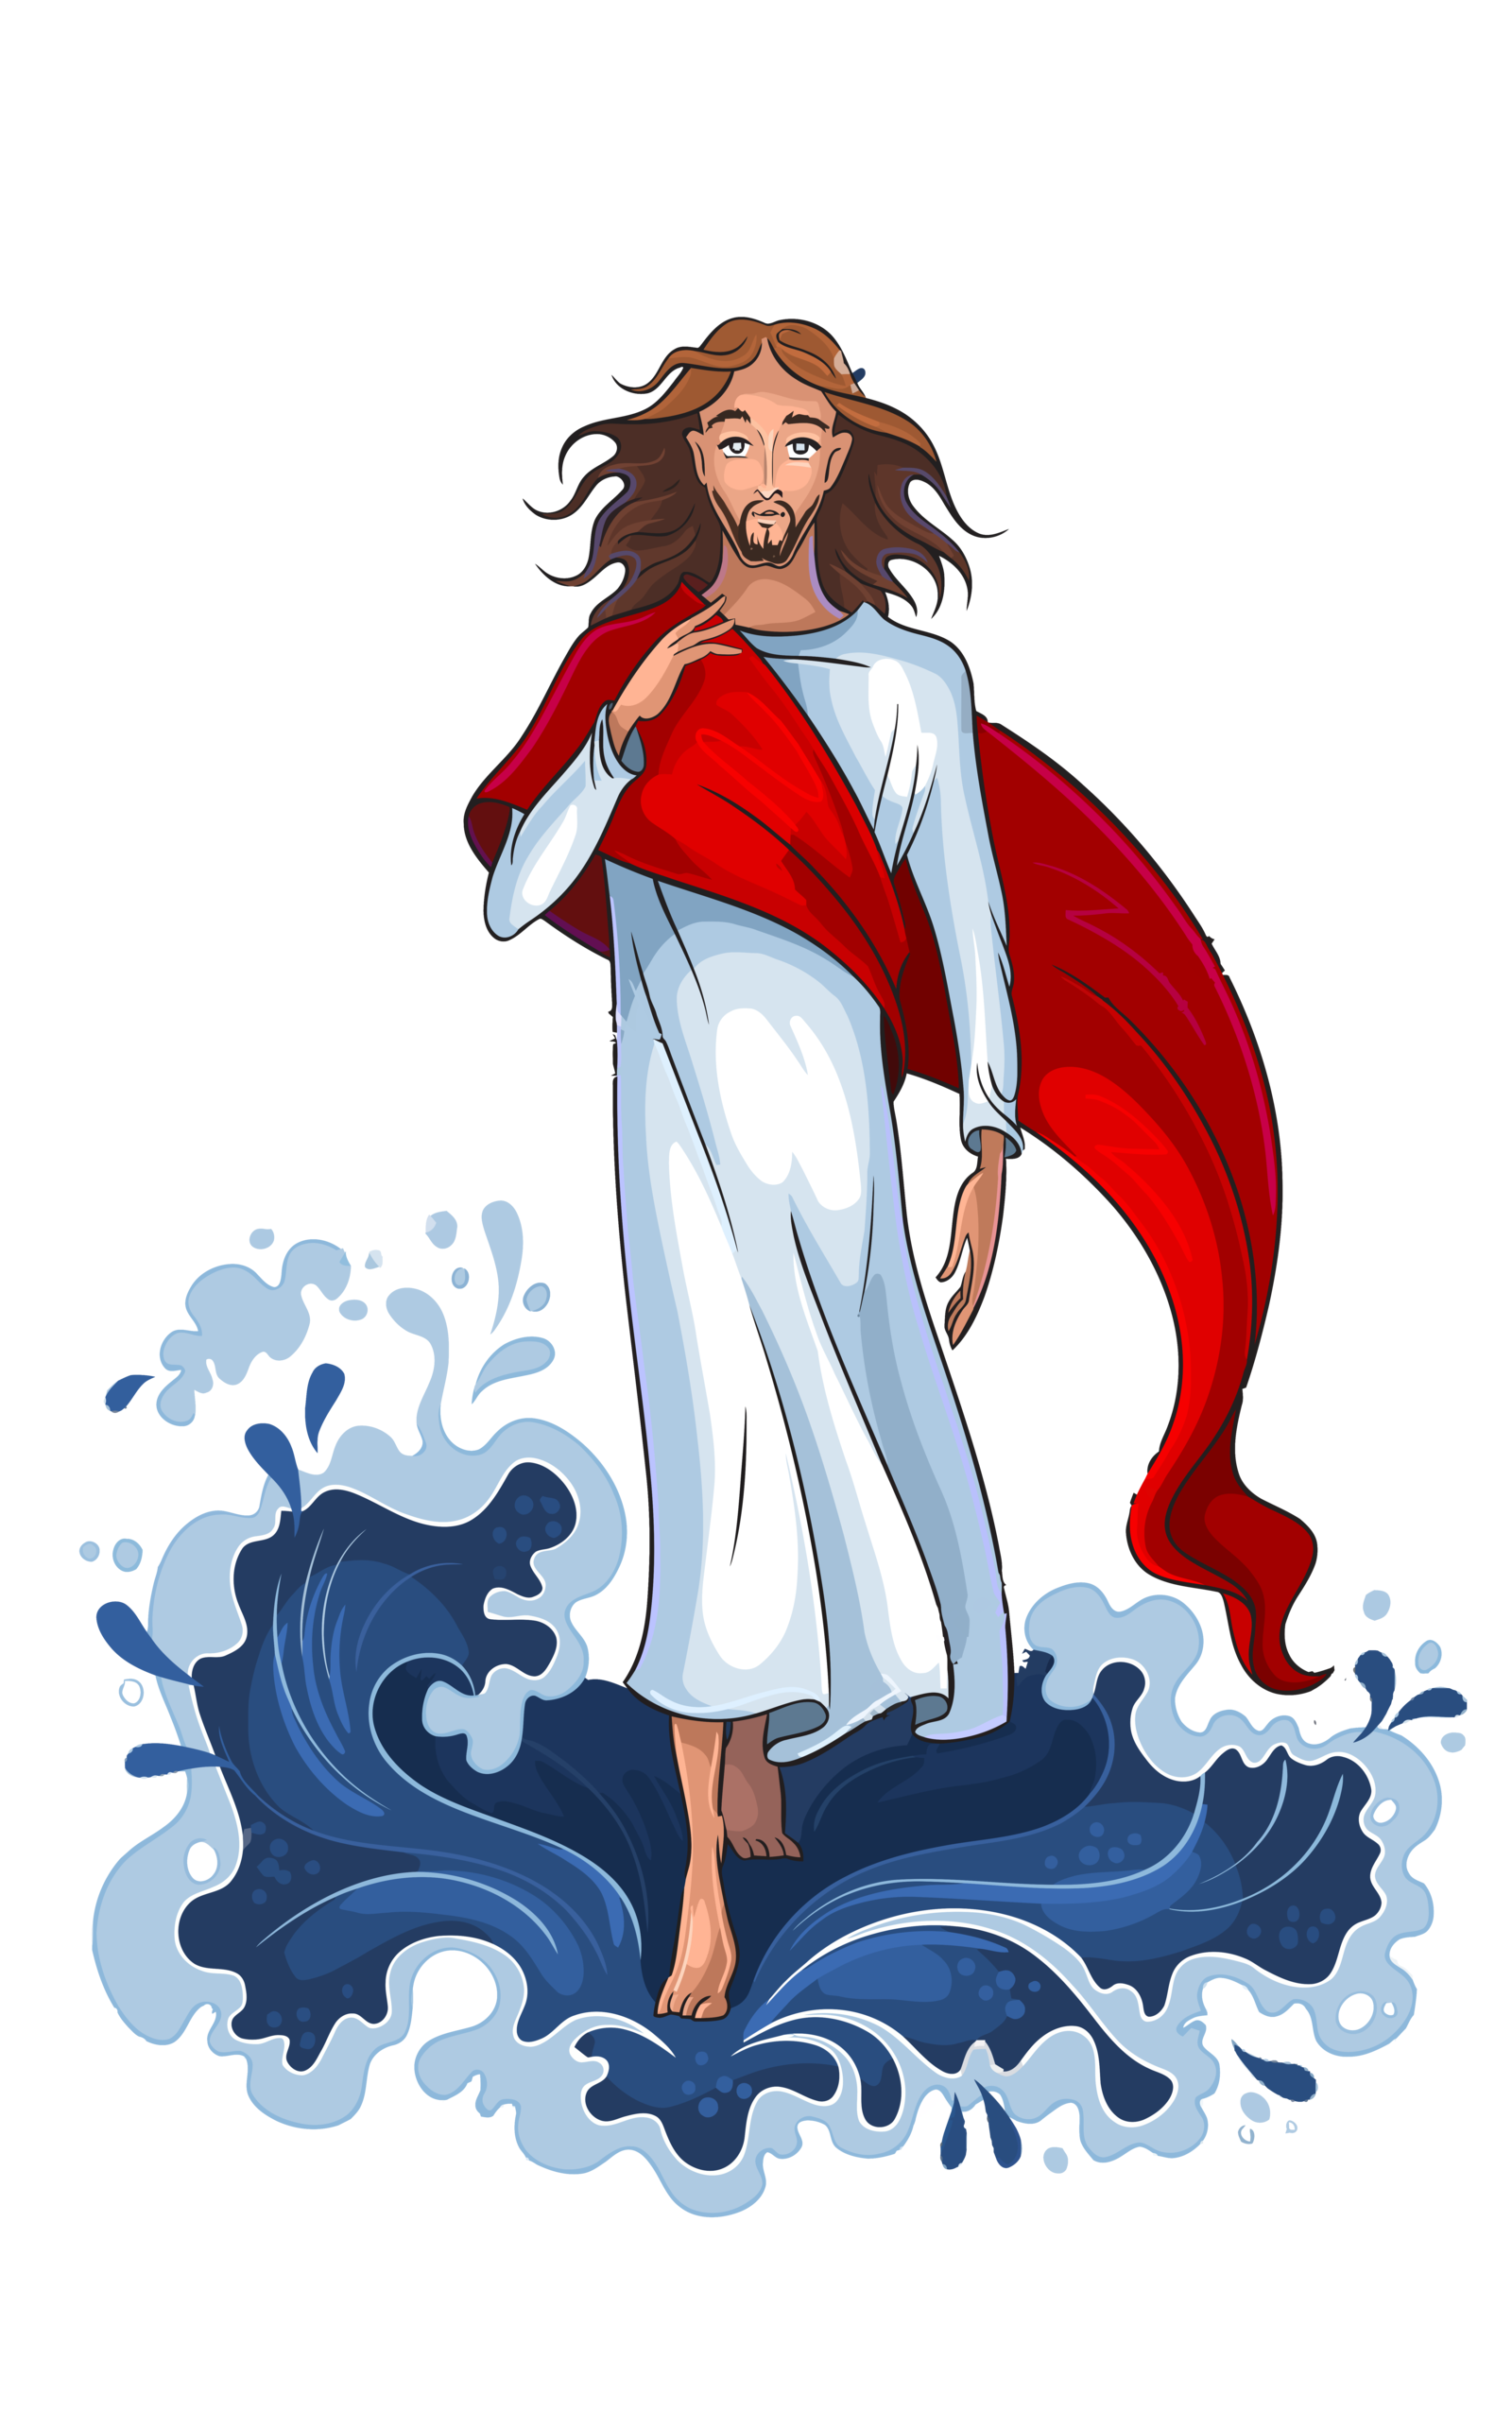 vector freeuse stock Jesus walking on water clipart. Image result for vector